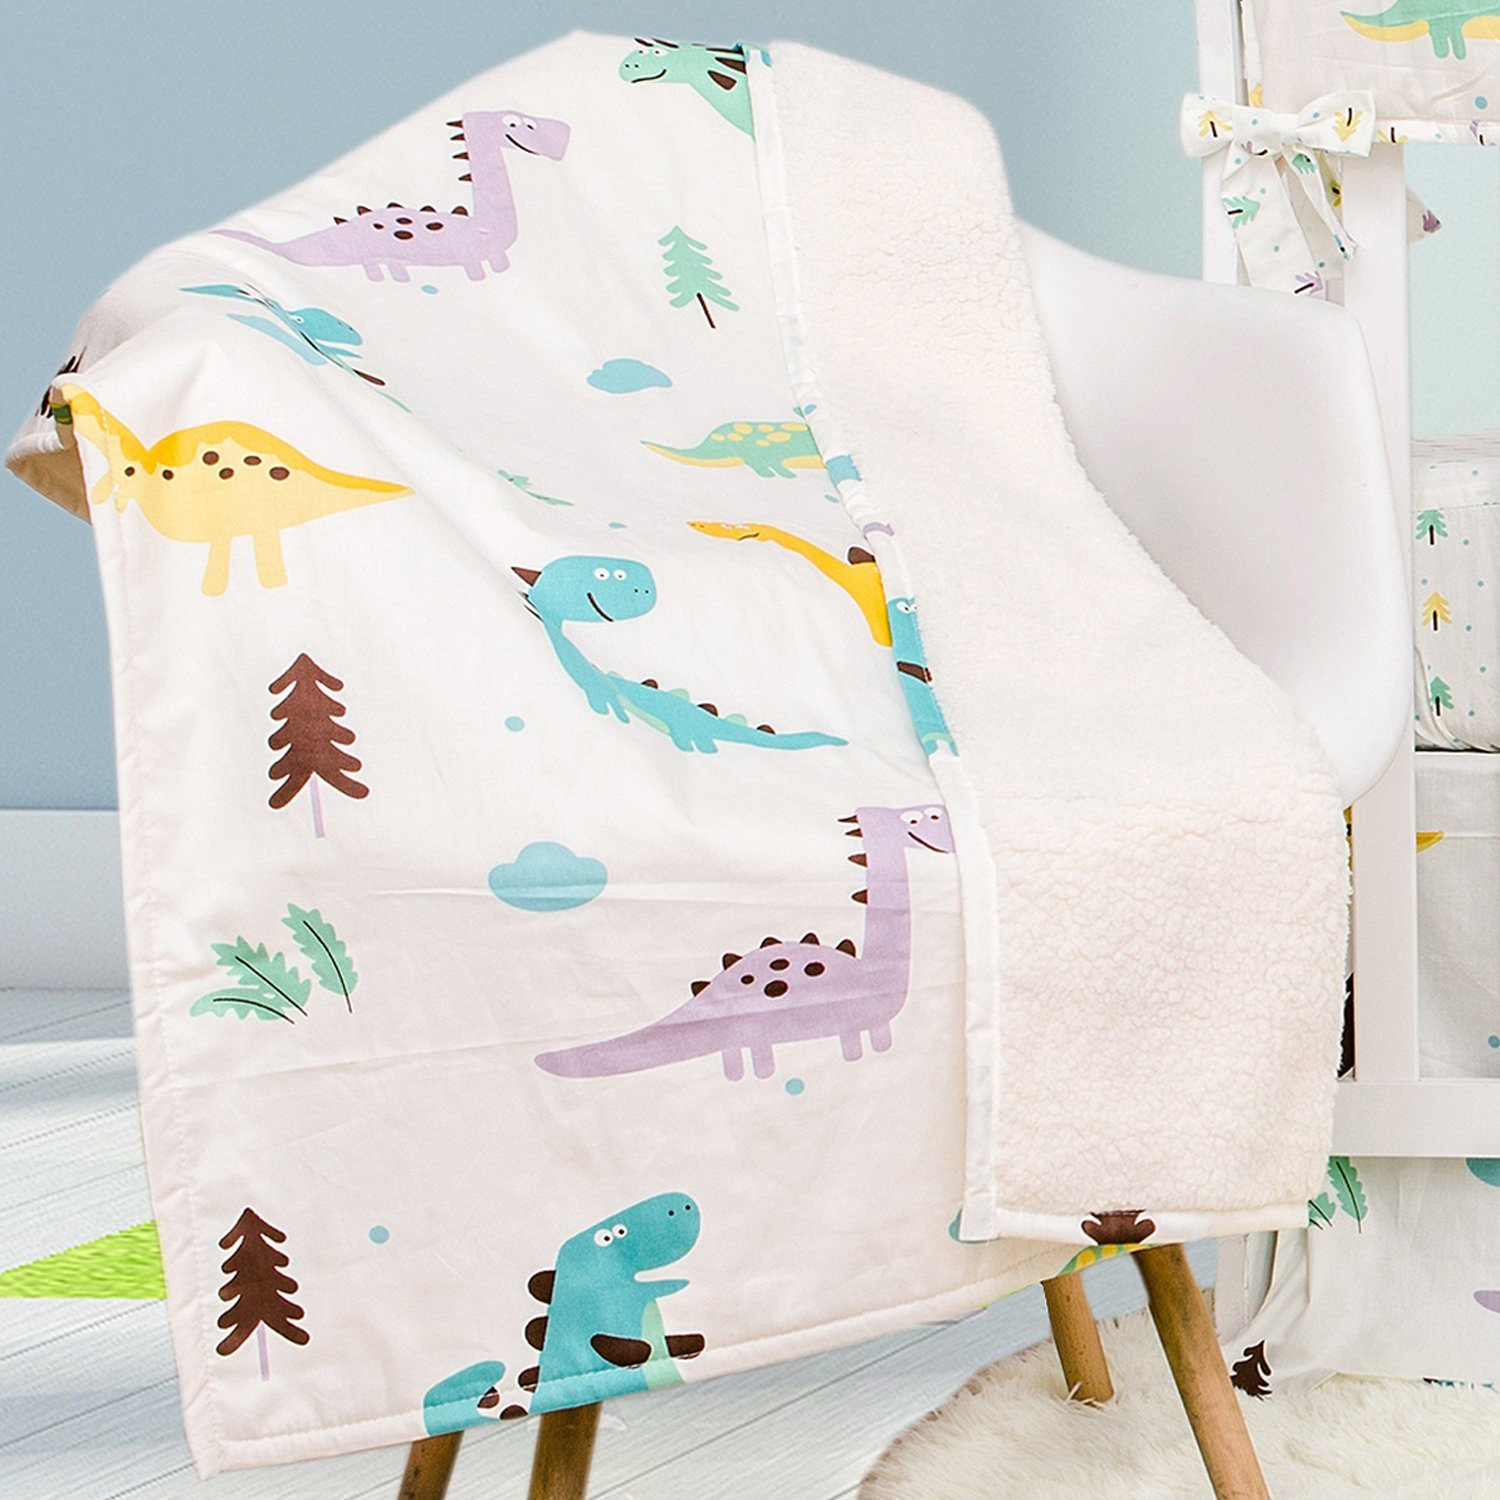 Toddler Baby Cotton Quilt Blanket Brandream Dinosaur Crib Bedding Sets with CribWrap Rail Cover White 100% Breathable Cotton 9 Pieces